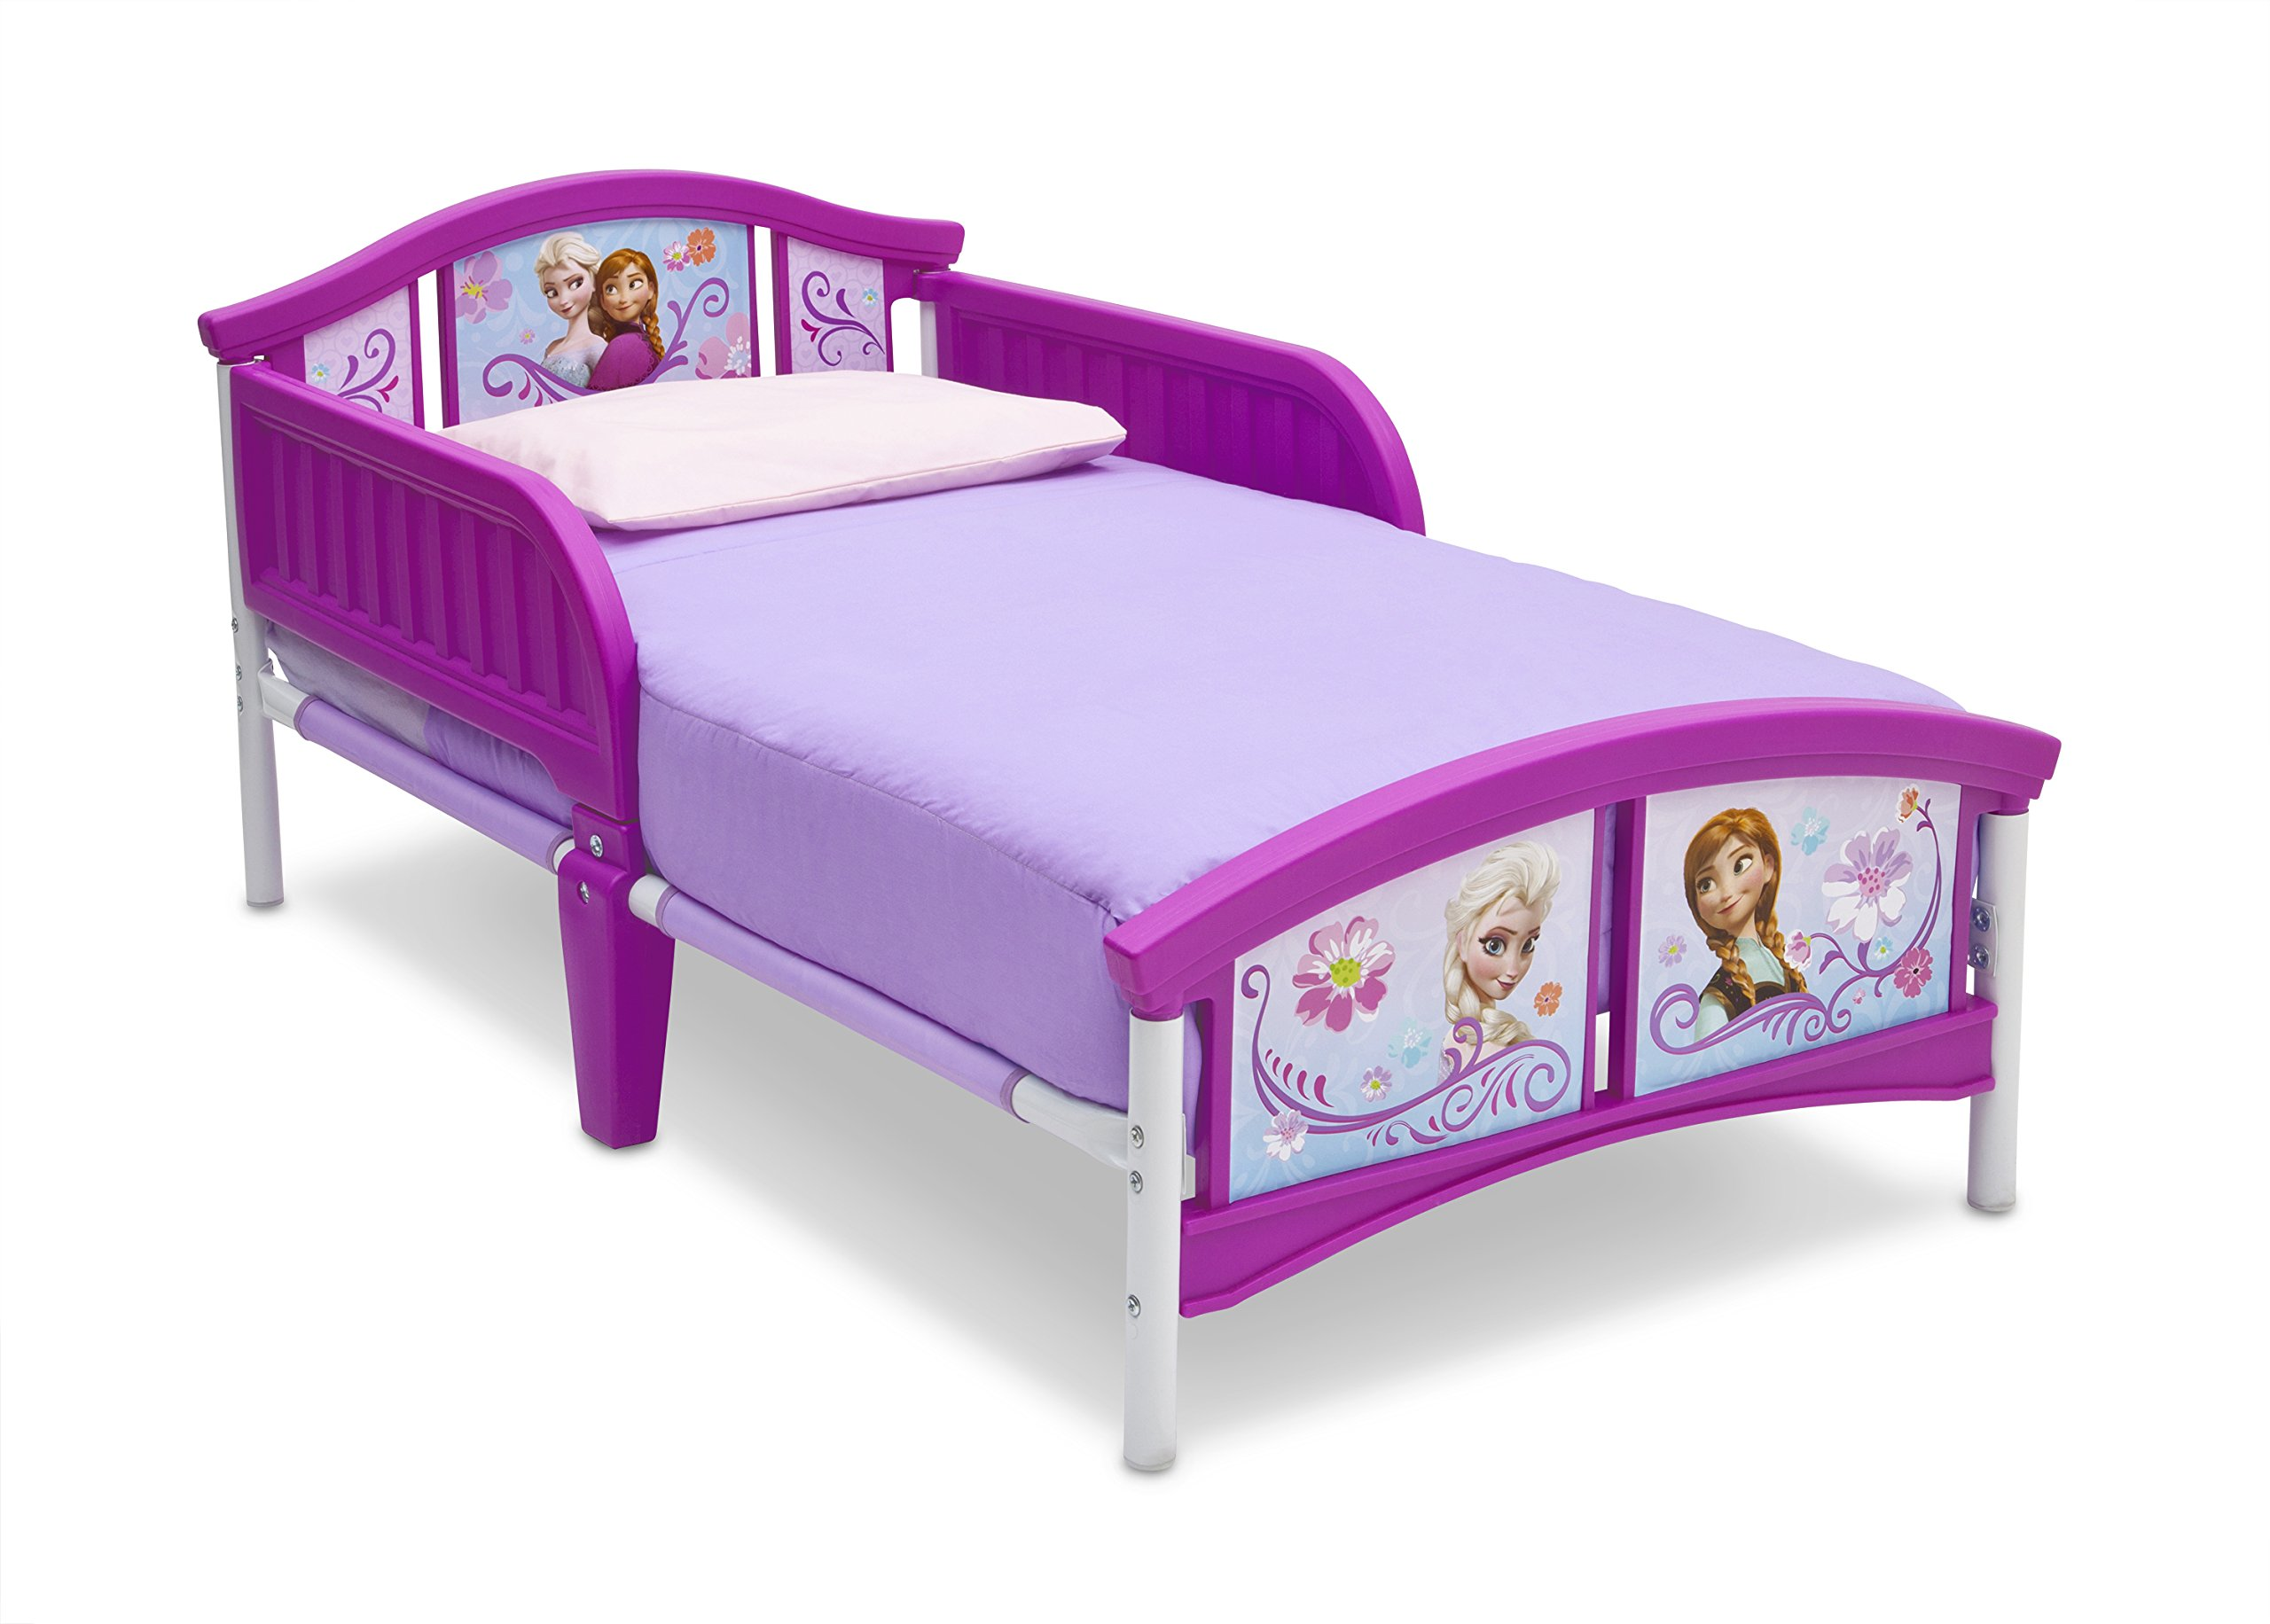 Toddler Bed For Girl Princess: Disney Frozen Canopy Kids Toddler Bed Girls Princess Anna